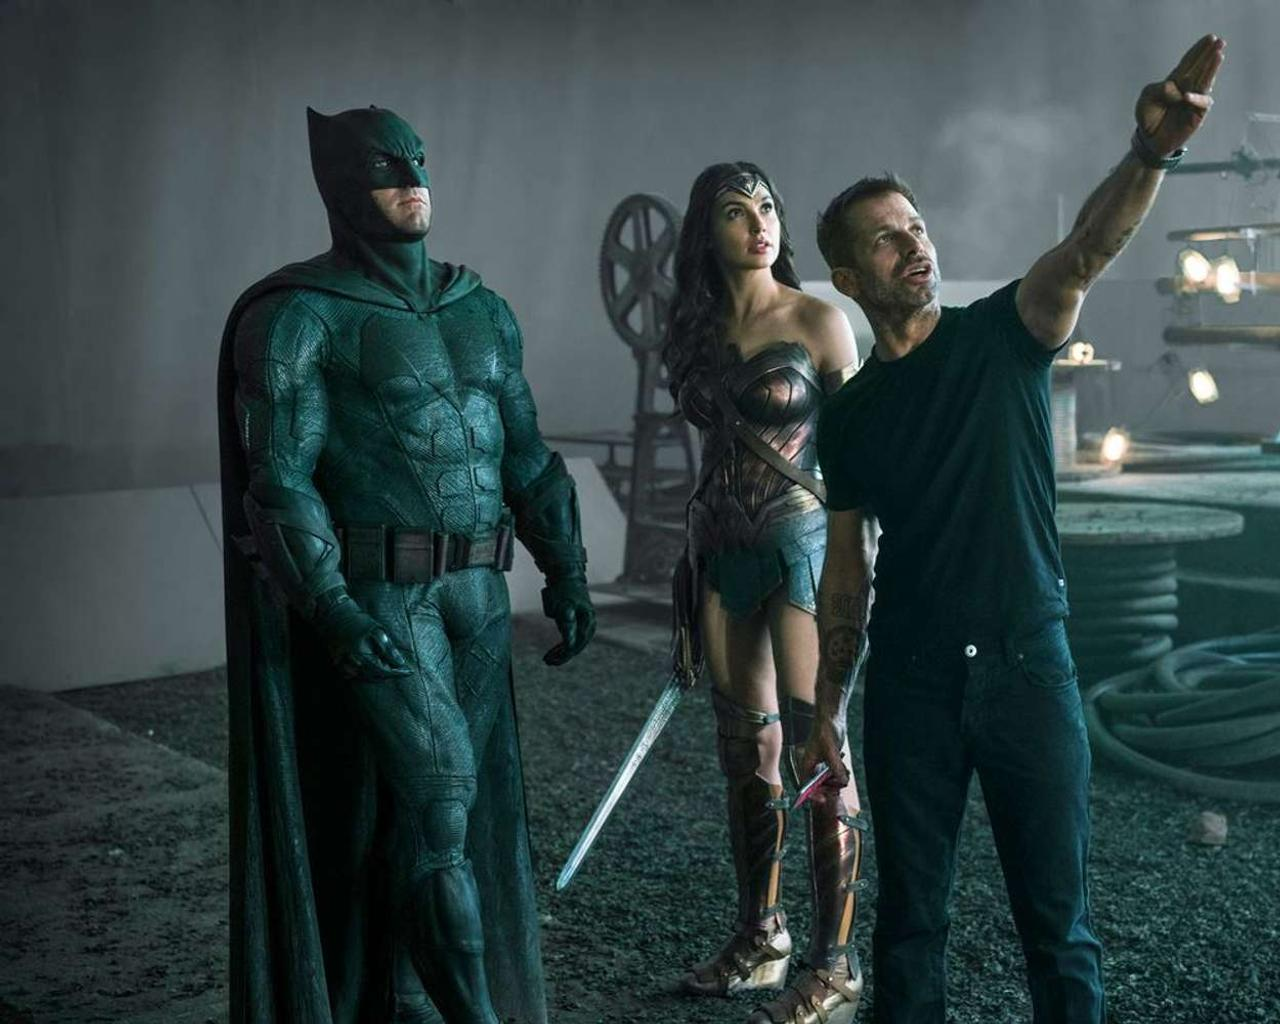 A Justice League writer was depressed as a result of the Whedon rewrite